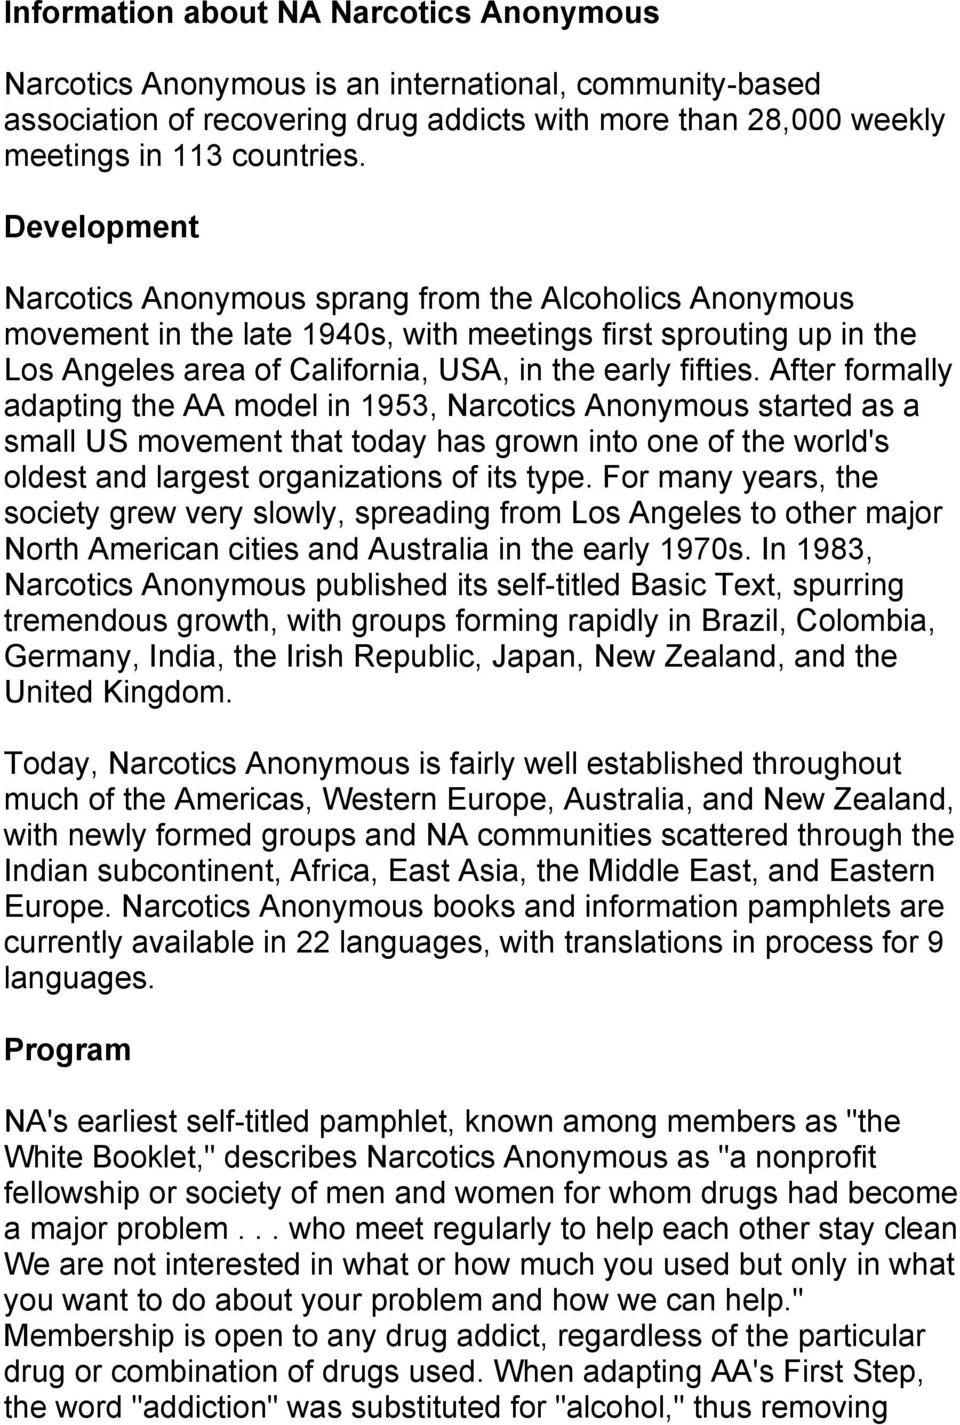 After formally adapting the AA model in 1953, Narcotics Anonymous started as a small US movement that today has grown into one of the world's oldest and largest organizations of its type.